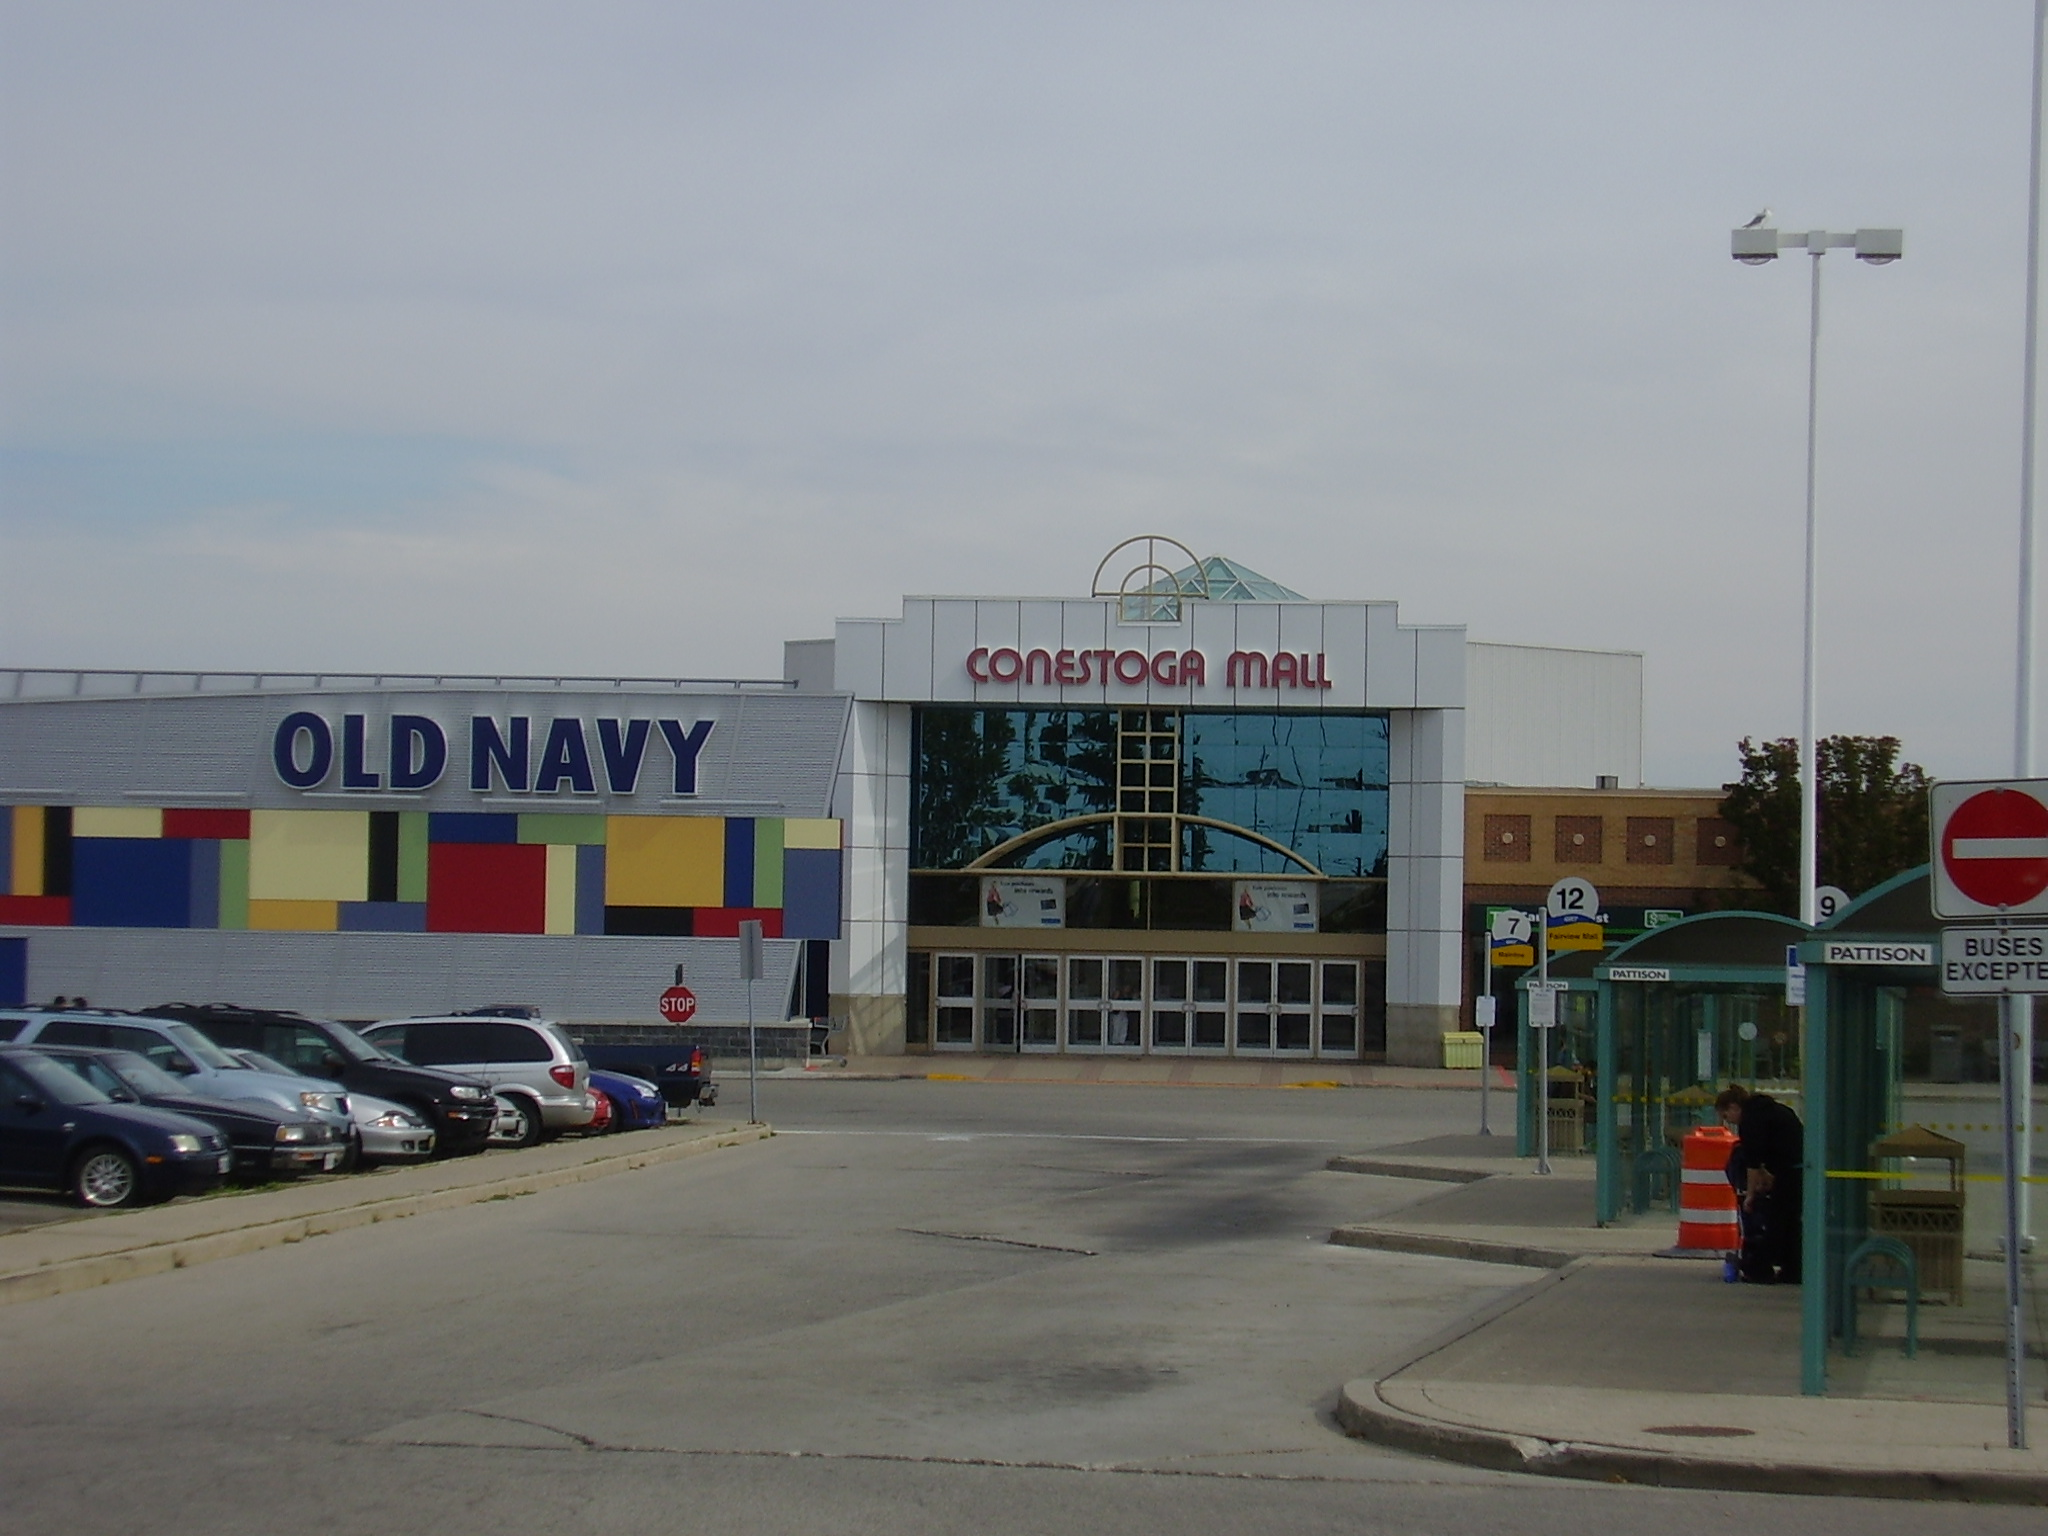 Maps and GPS directions to Old Navy Guelph and other Old Navy Stores in failvideo.ml your nearest Old Navy Stores. Old Navy sells clothes and accessories for men, women, teens, kids, and baby. It has stores across the U.S. and Canada.